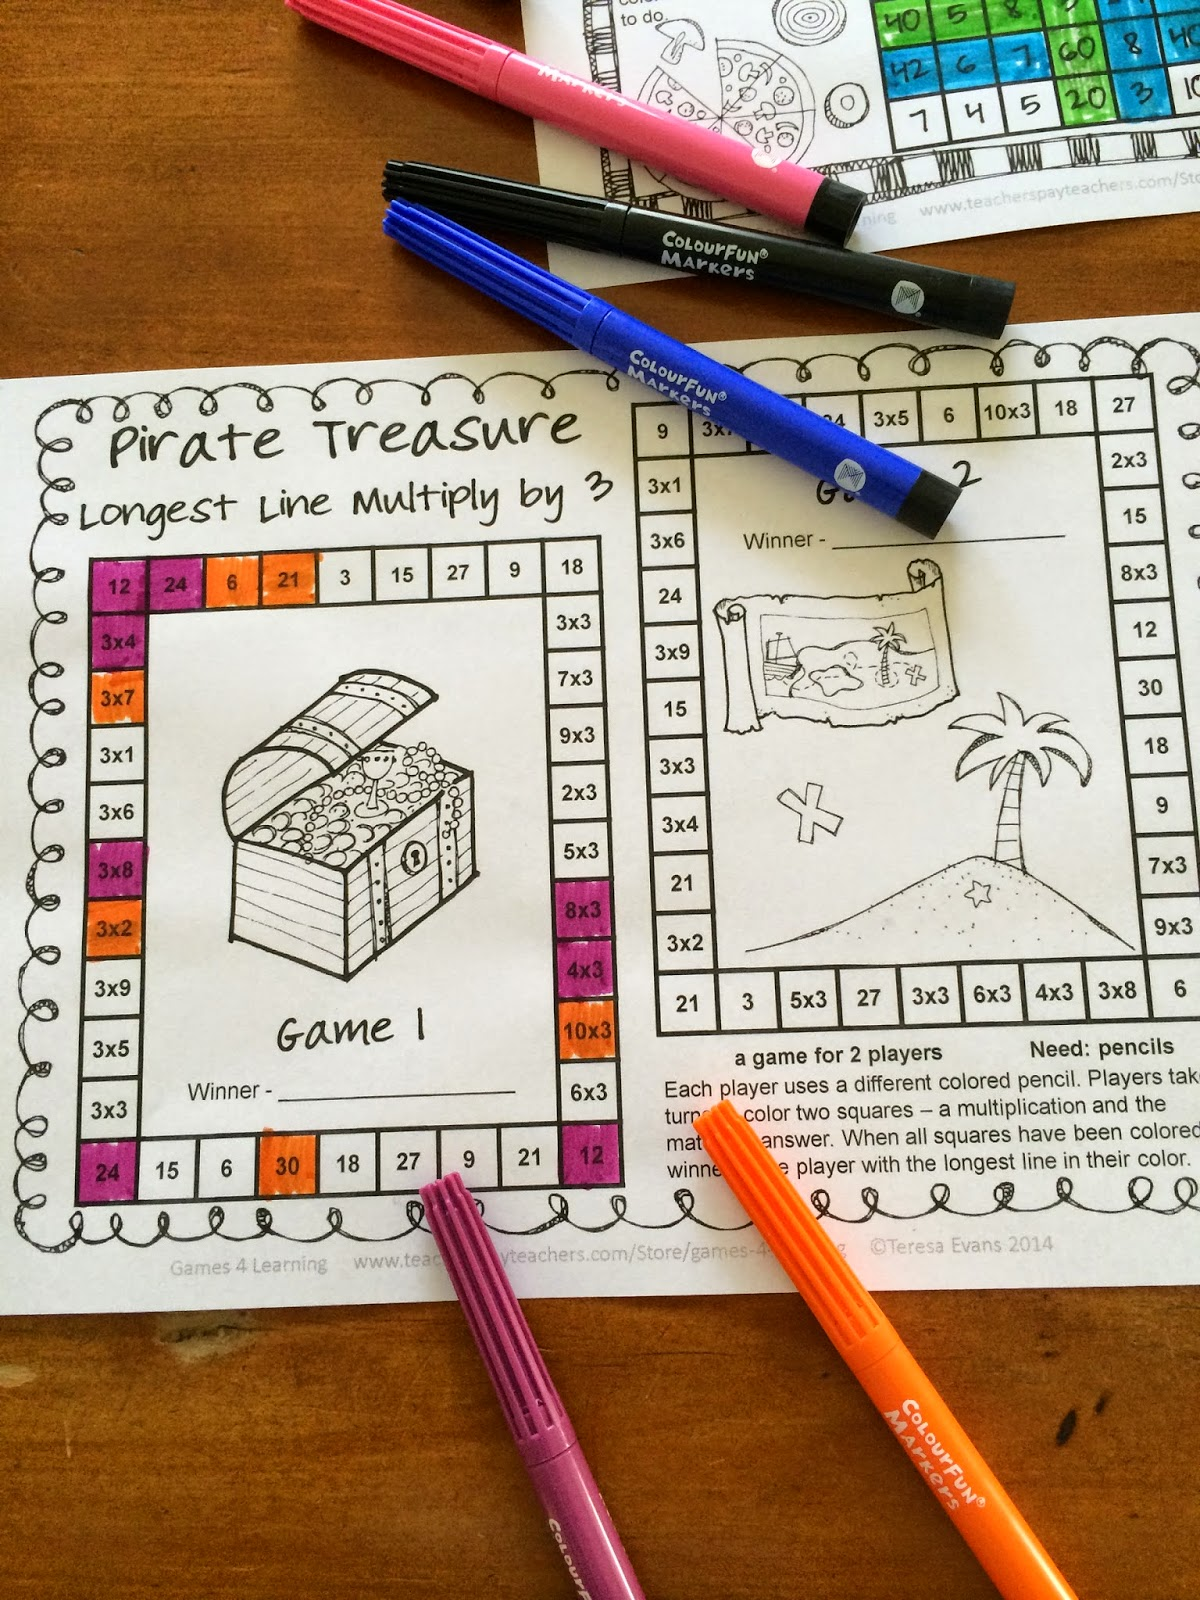 http://www.teacherspayteachers.com/Product/Multiplication-Games-NO-PREP-Longest-Line-1197085